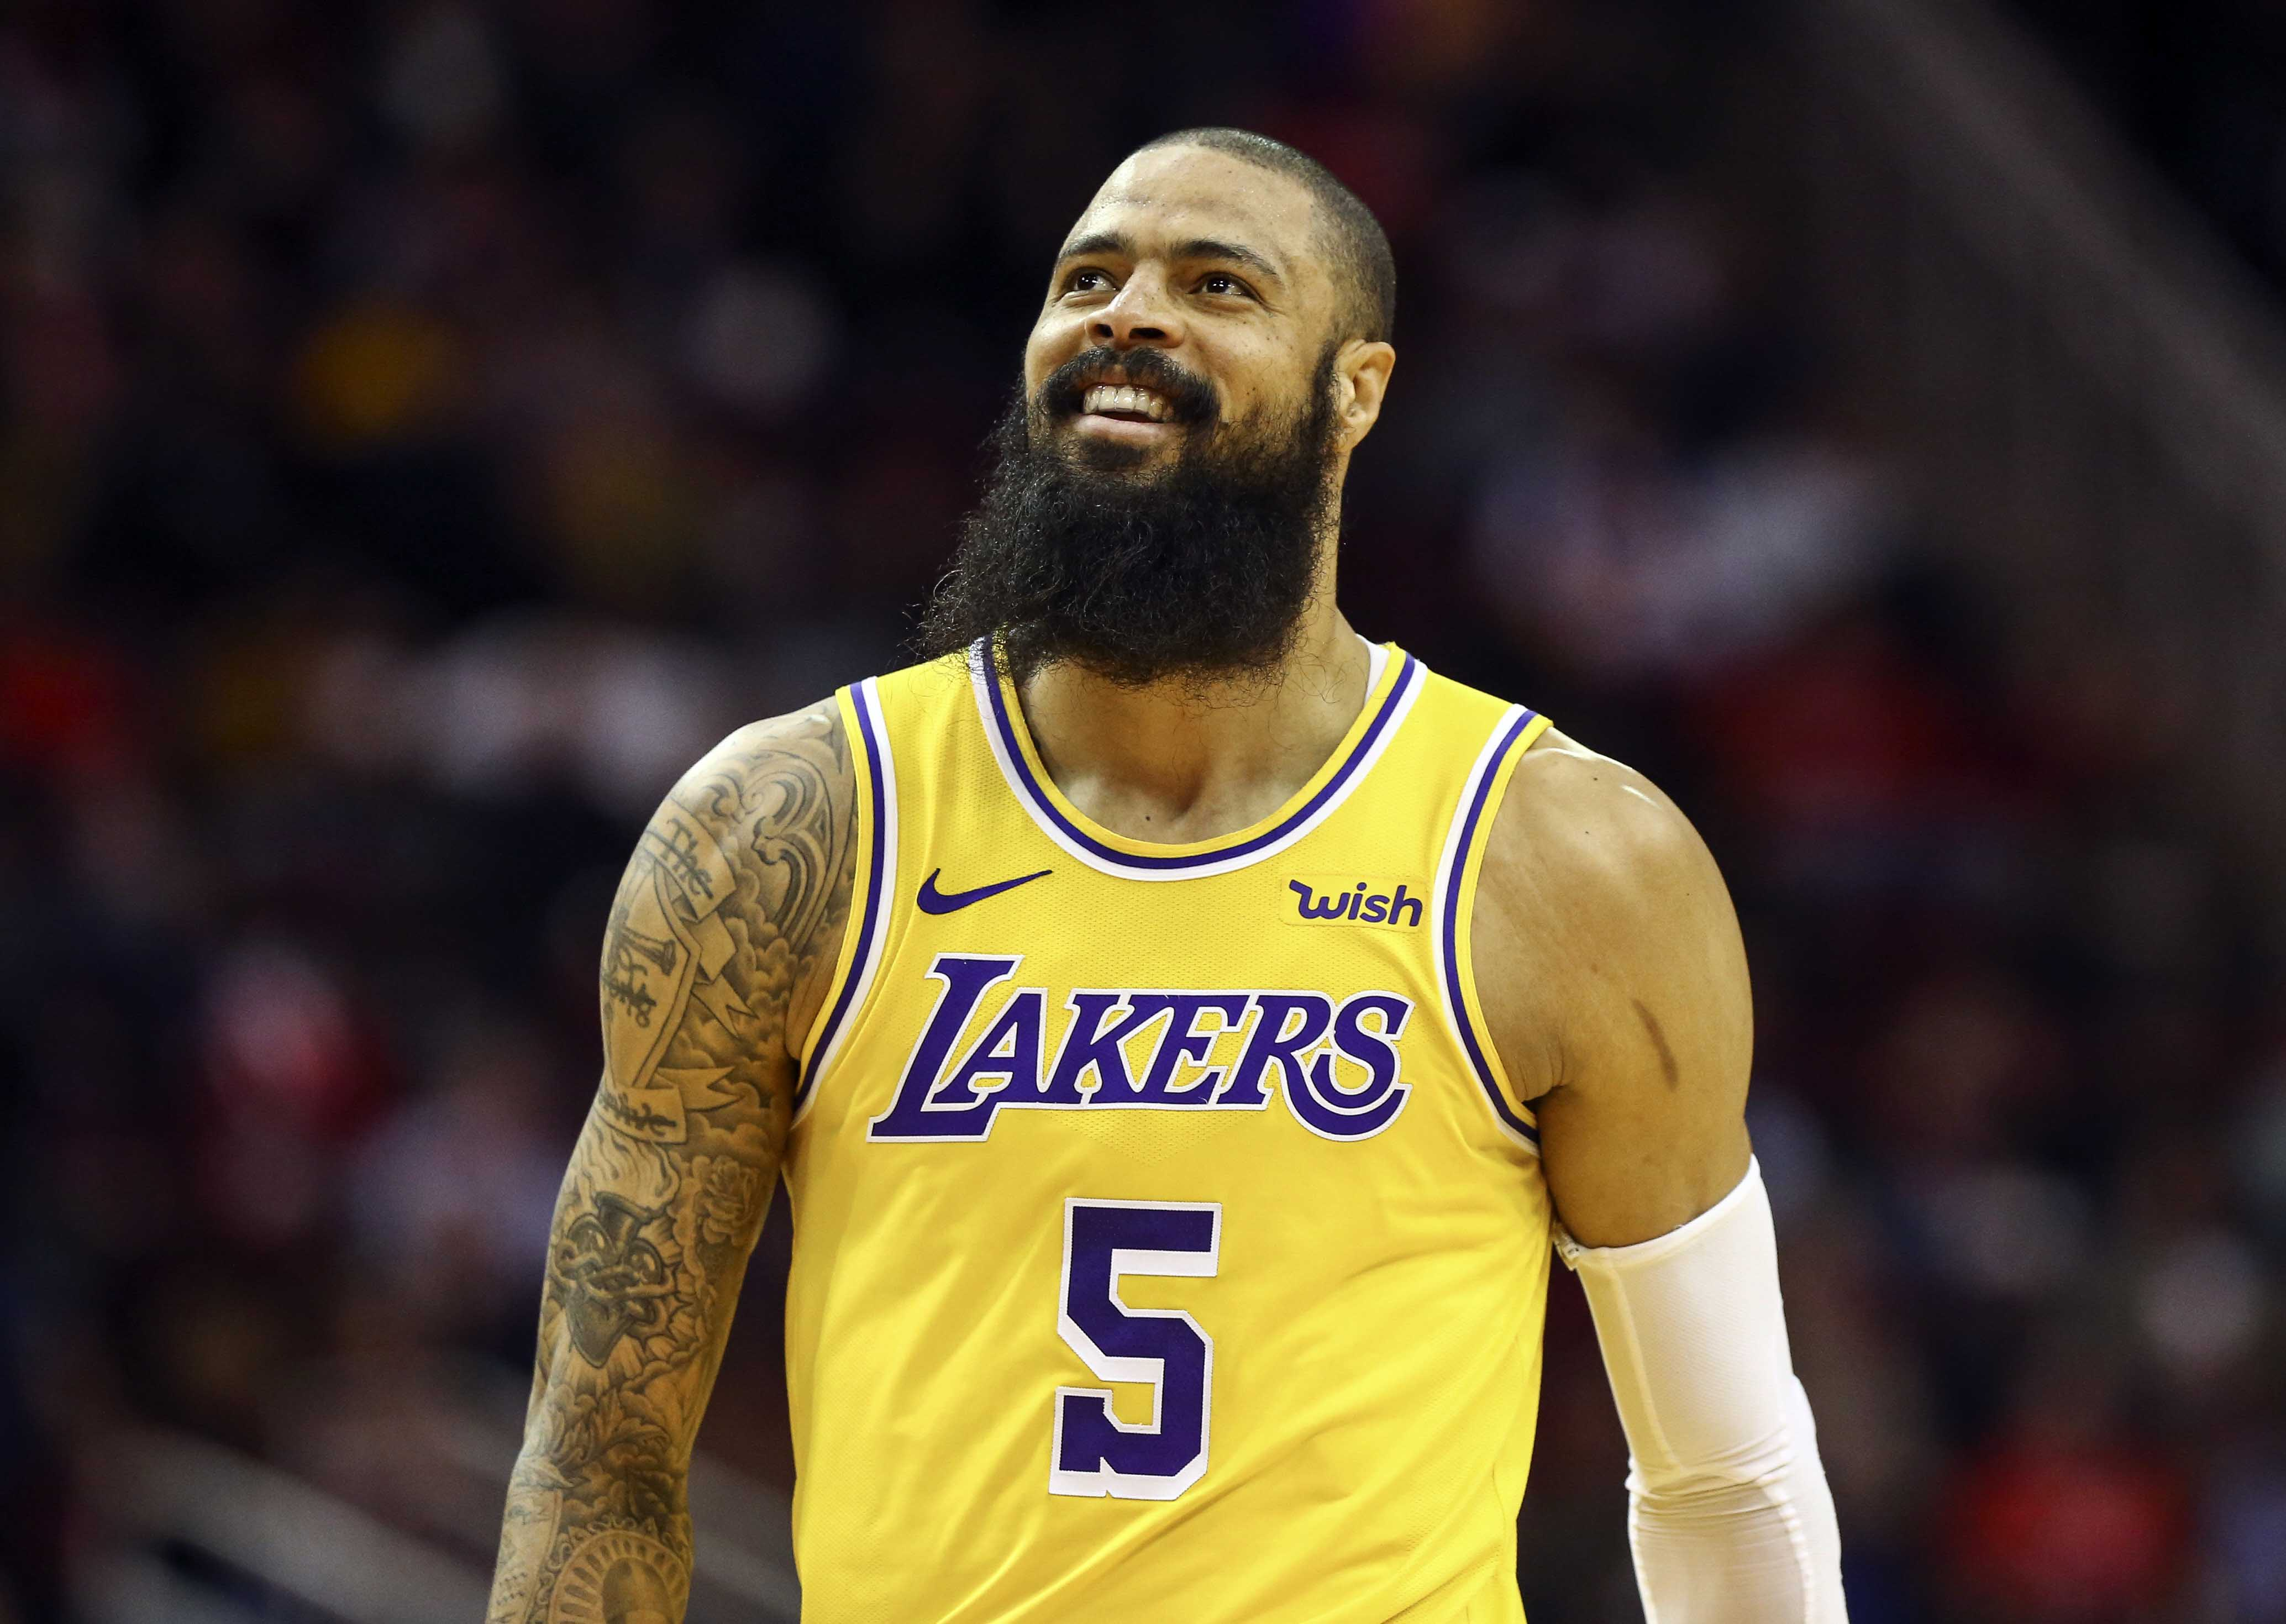 Report: Tyson Chandler agrees to 1-year deal with Rockets